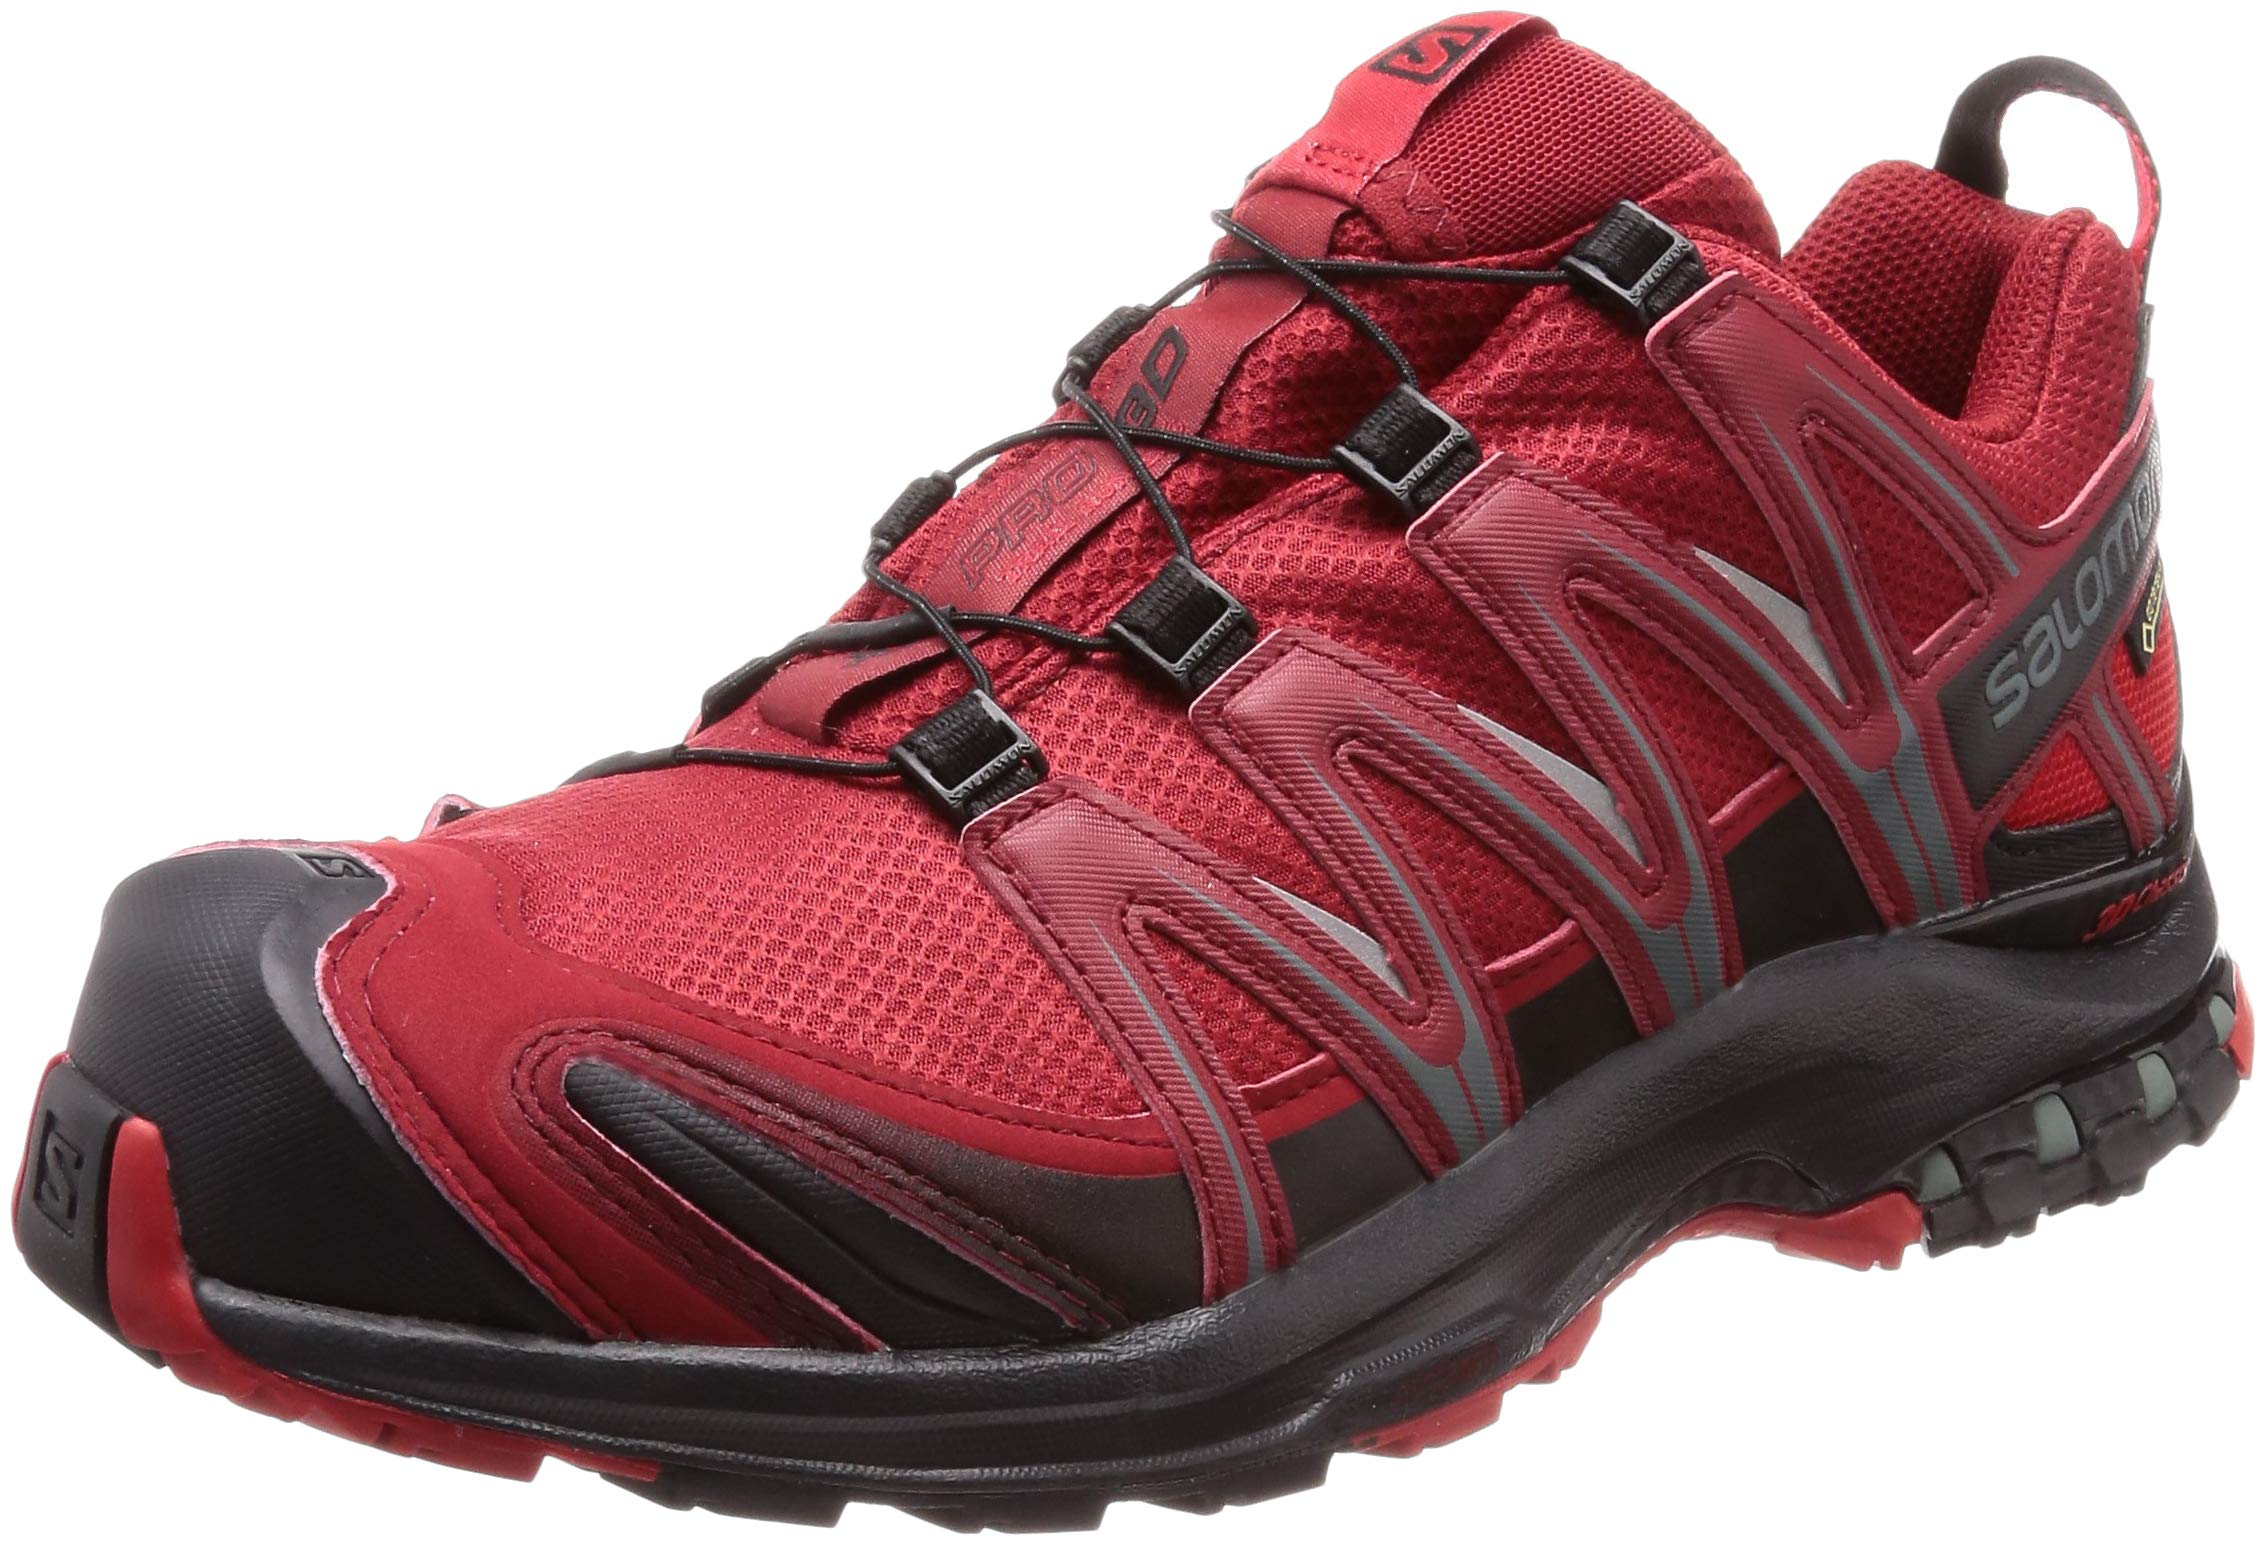 reputable site ddad3 fdc5a Salomon XA PRO 3D GTX, Scarpe da Trail Running Uomo product image